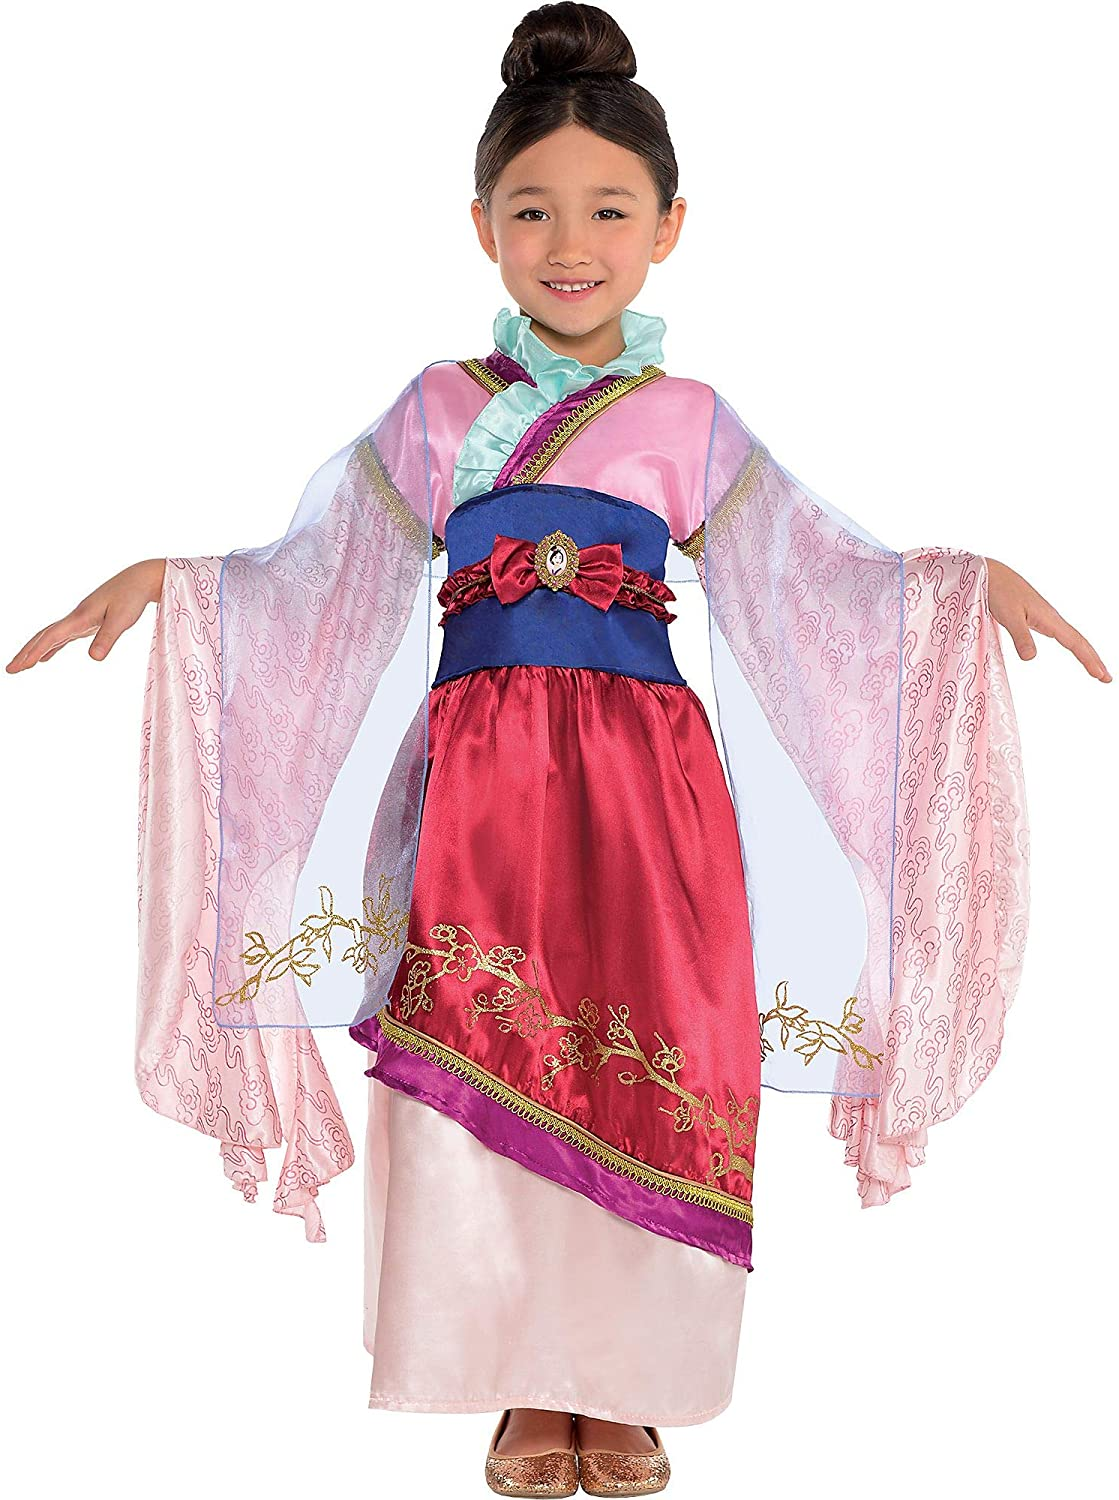 Mulan Costume Classic for Girls, Dress, Attached Belt, and Sash